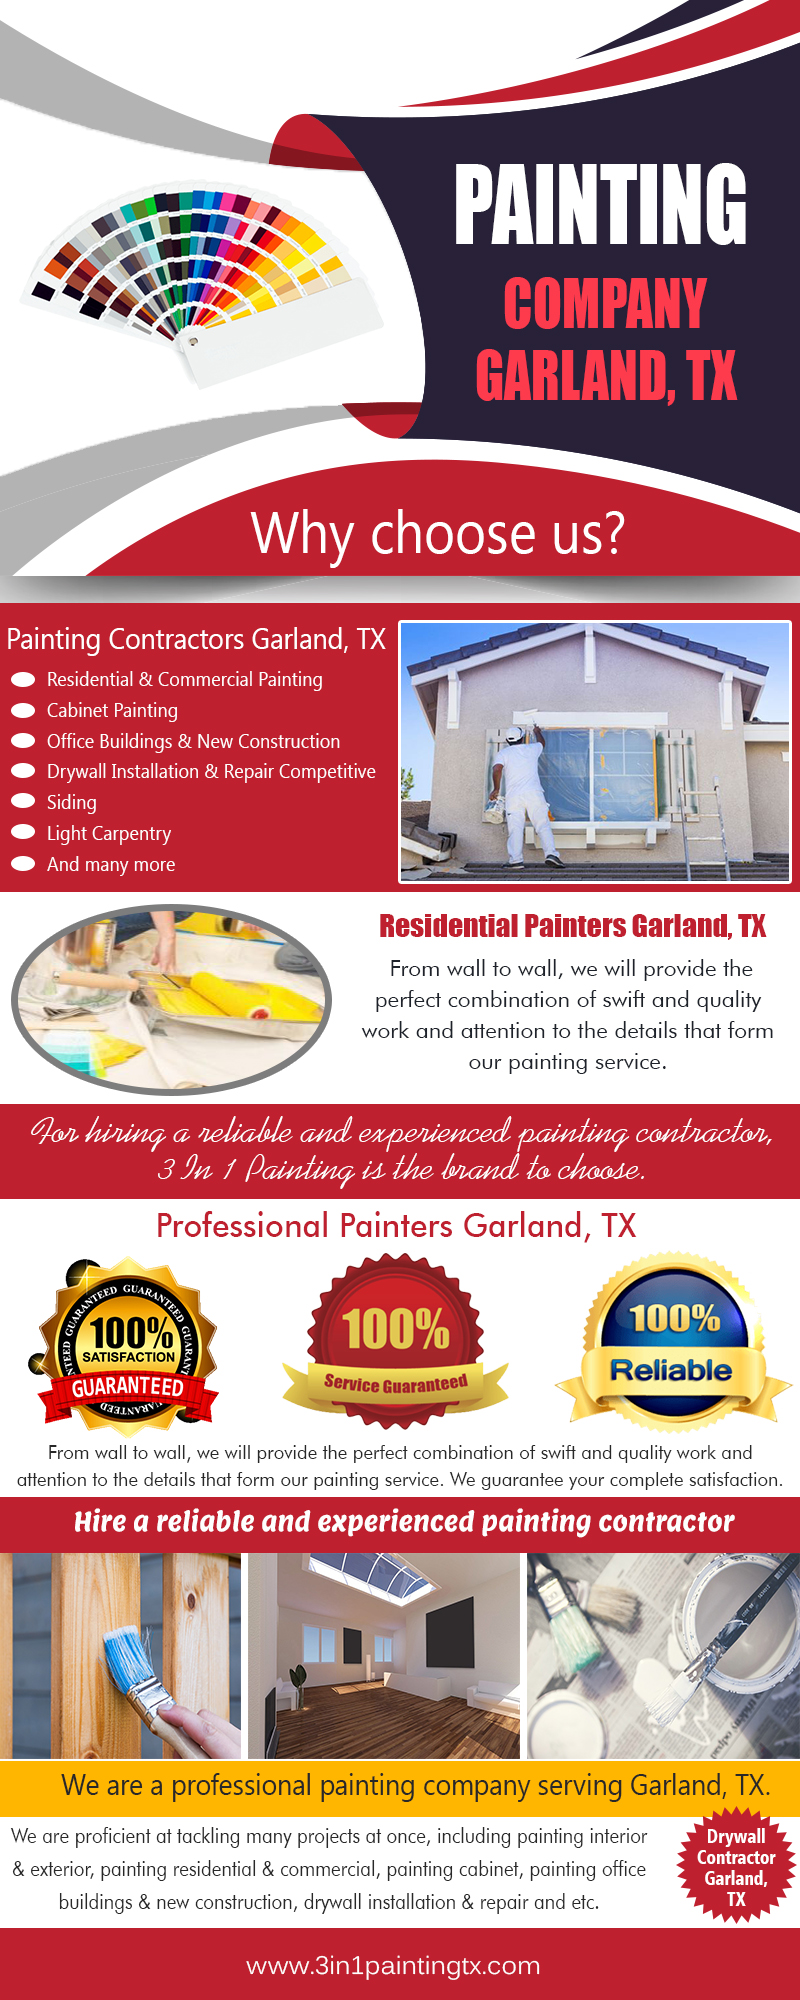 Painting Company Garland, TX|http://3in1paintingtx.com/